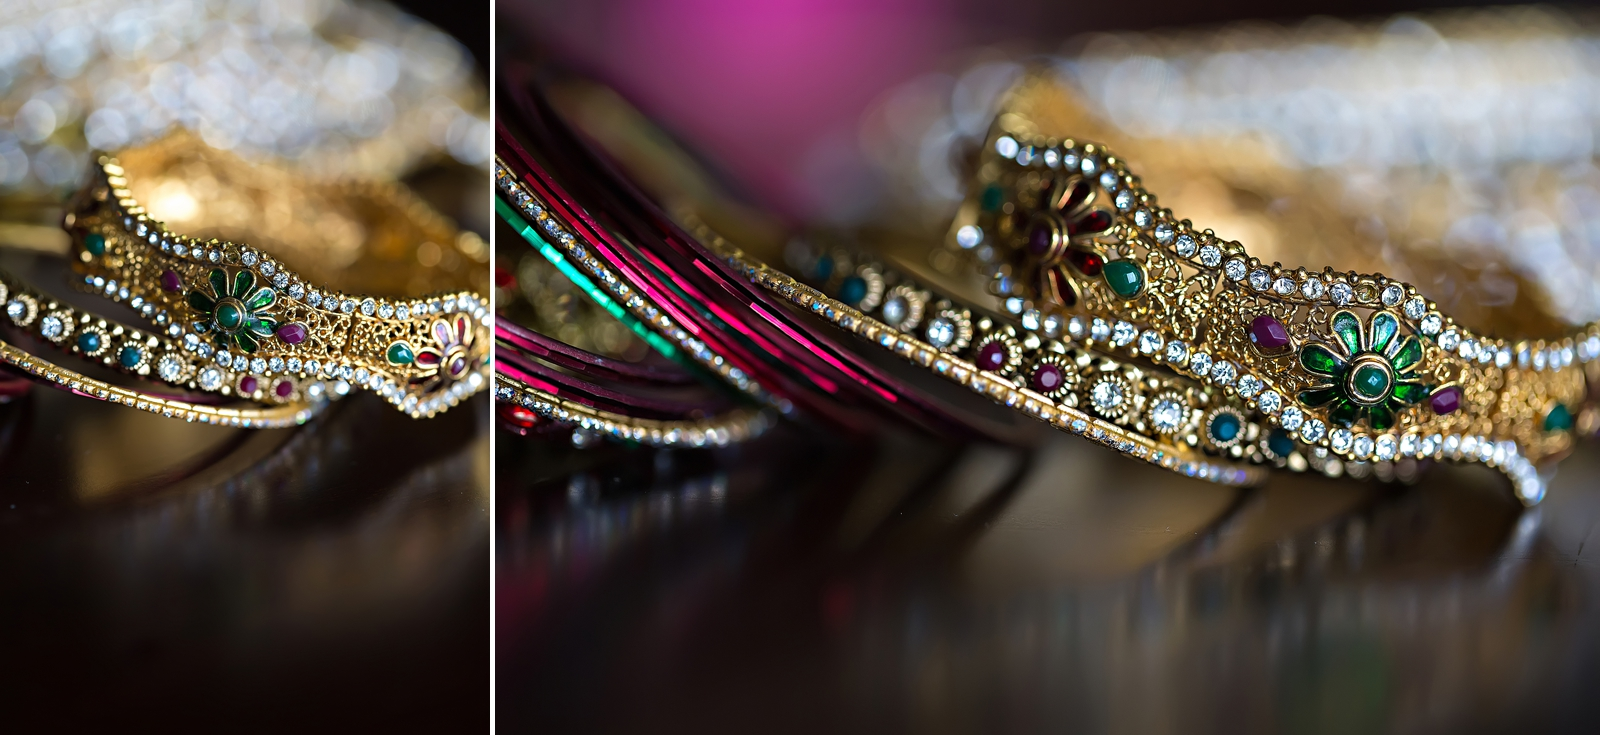 8 Tips To Photograph An Indian Wedding Miami Wedding Photographers